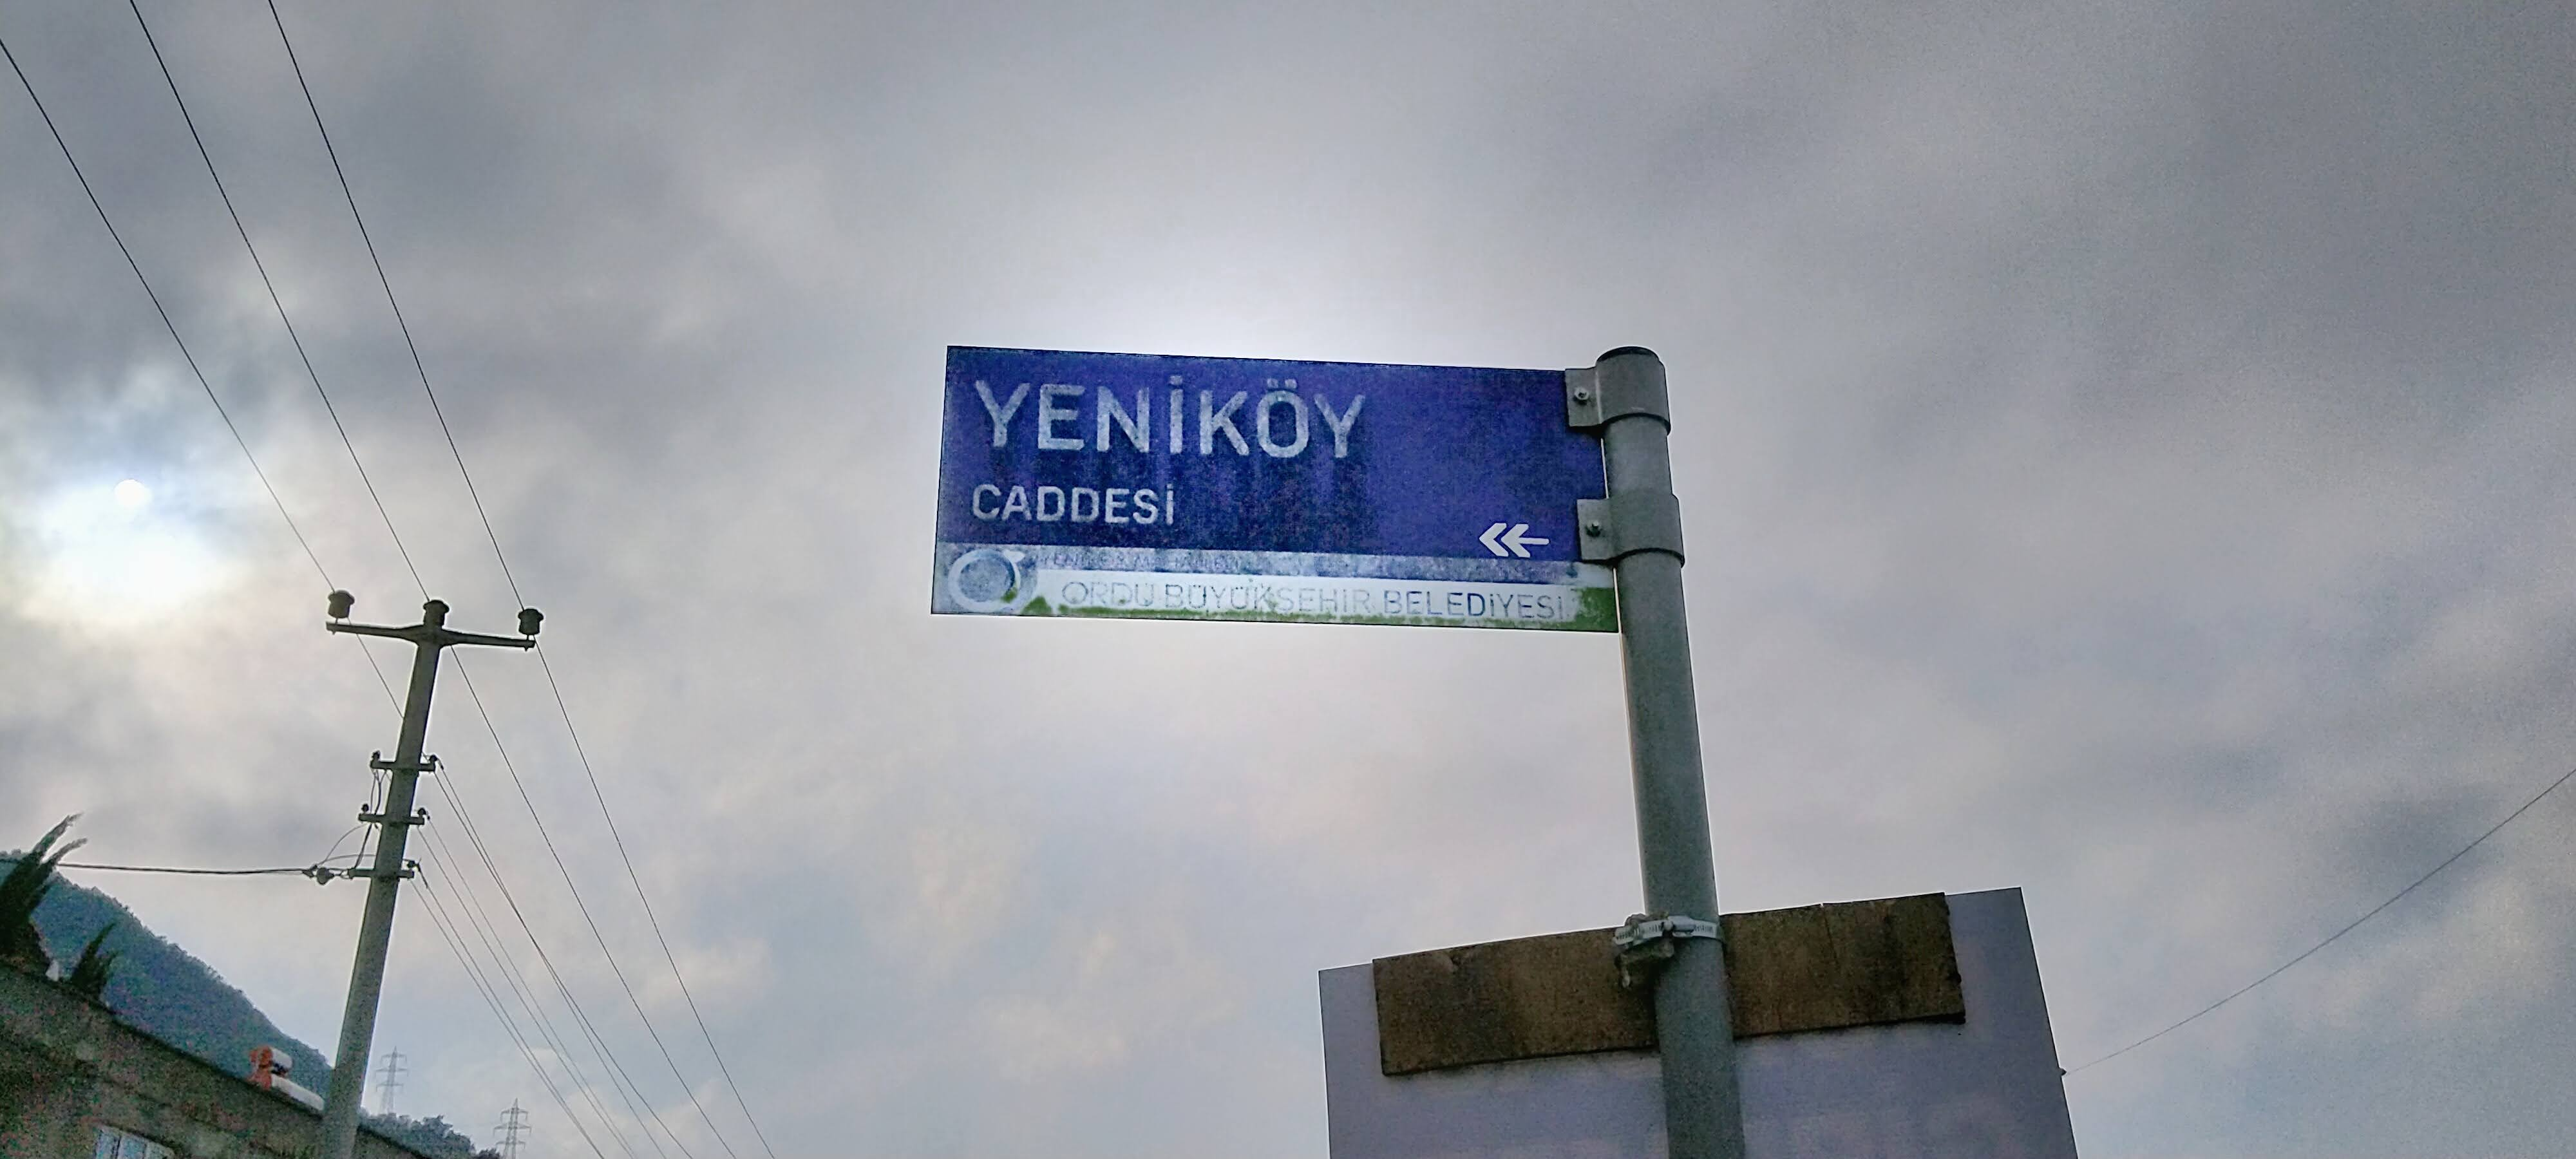 Old, fading street sign, with text 'Yeniköy Caddesi ↞' and the logo of the Metropolitan Municipality of Ordu.